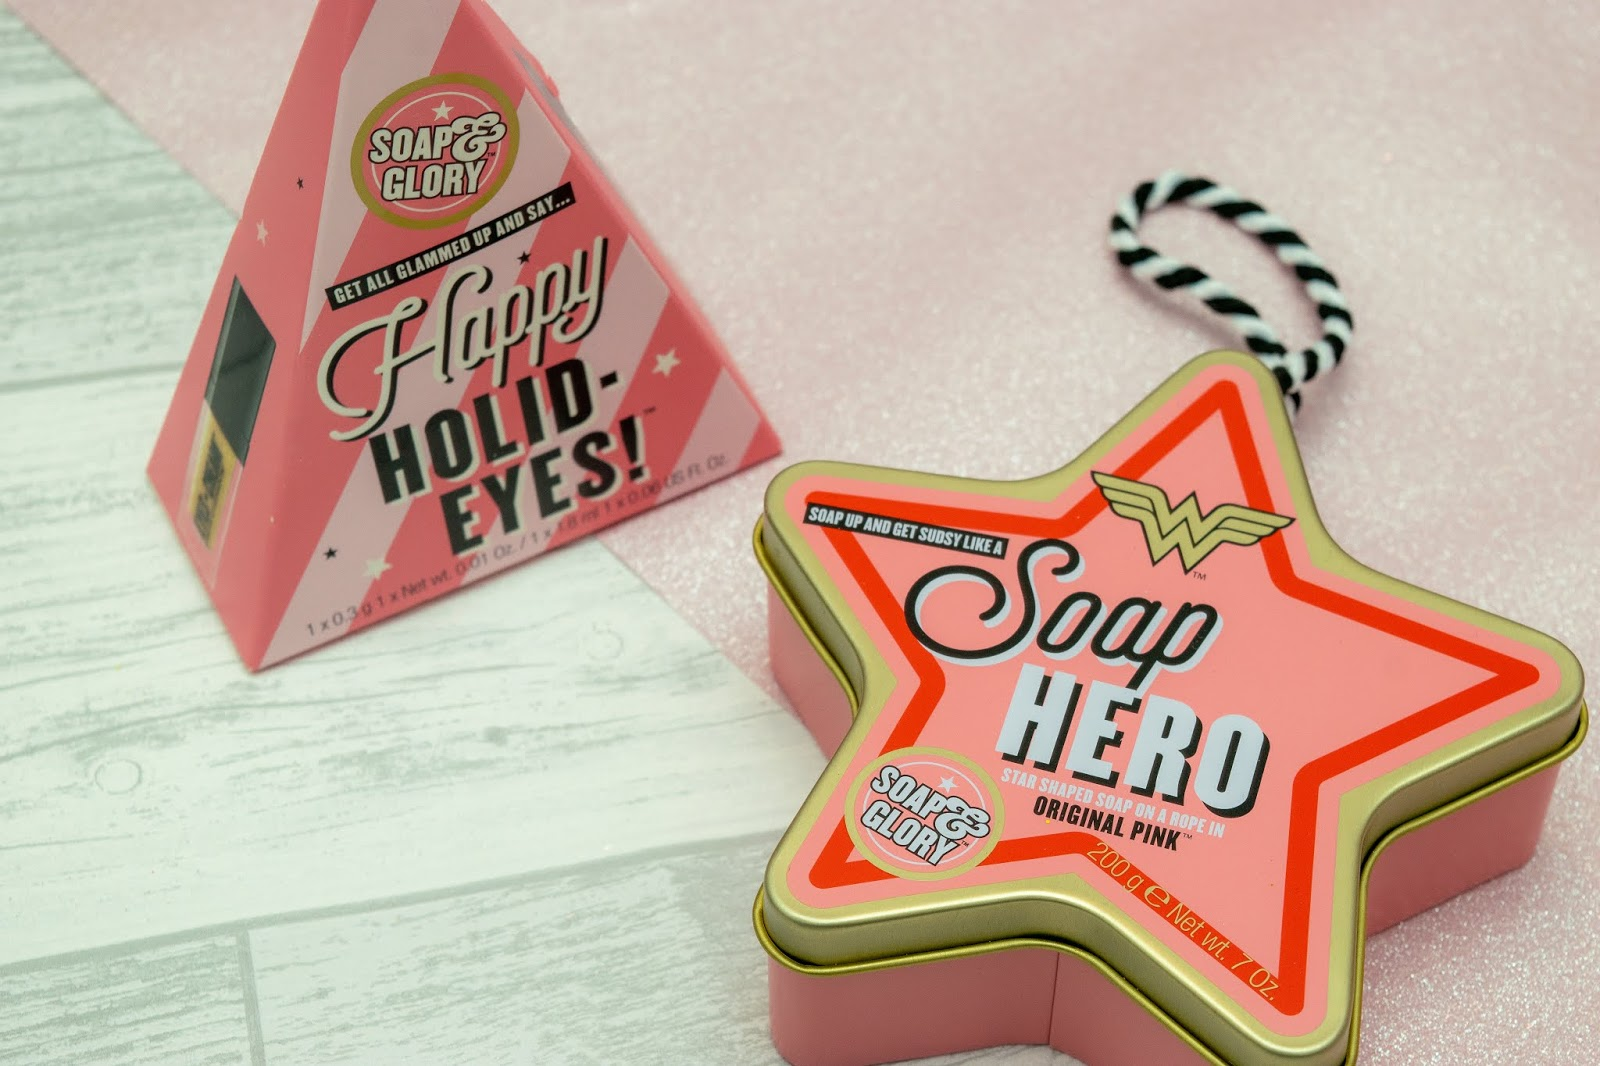 A rectangular based pyramid box with the words Happy Holid-Eyes on the front with a loop on top and a metal star tin with the words Soap Hero on and with a loop on top.